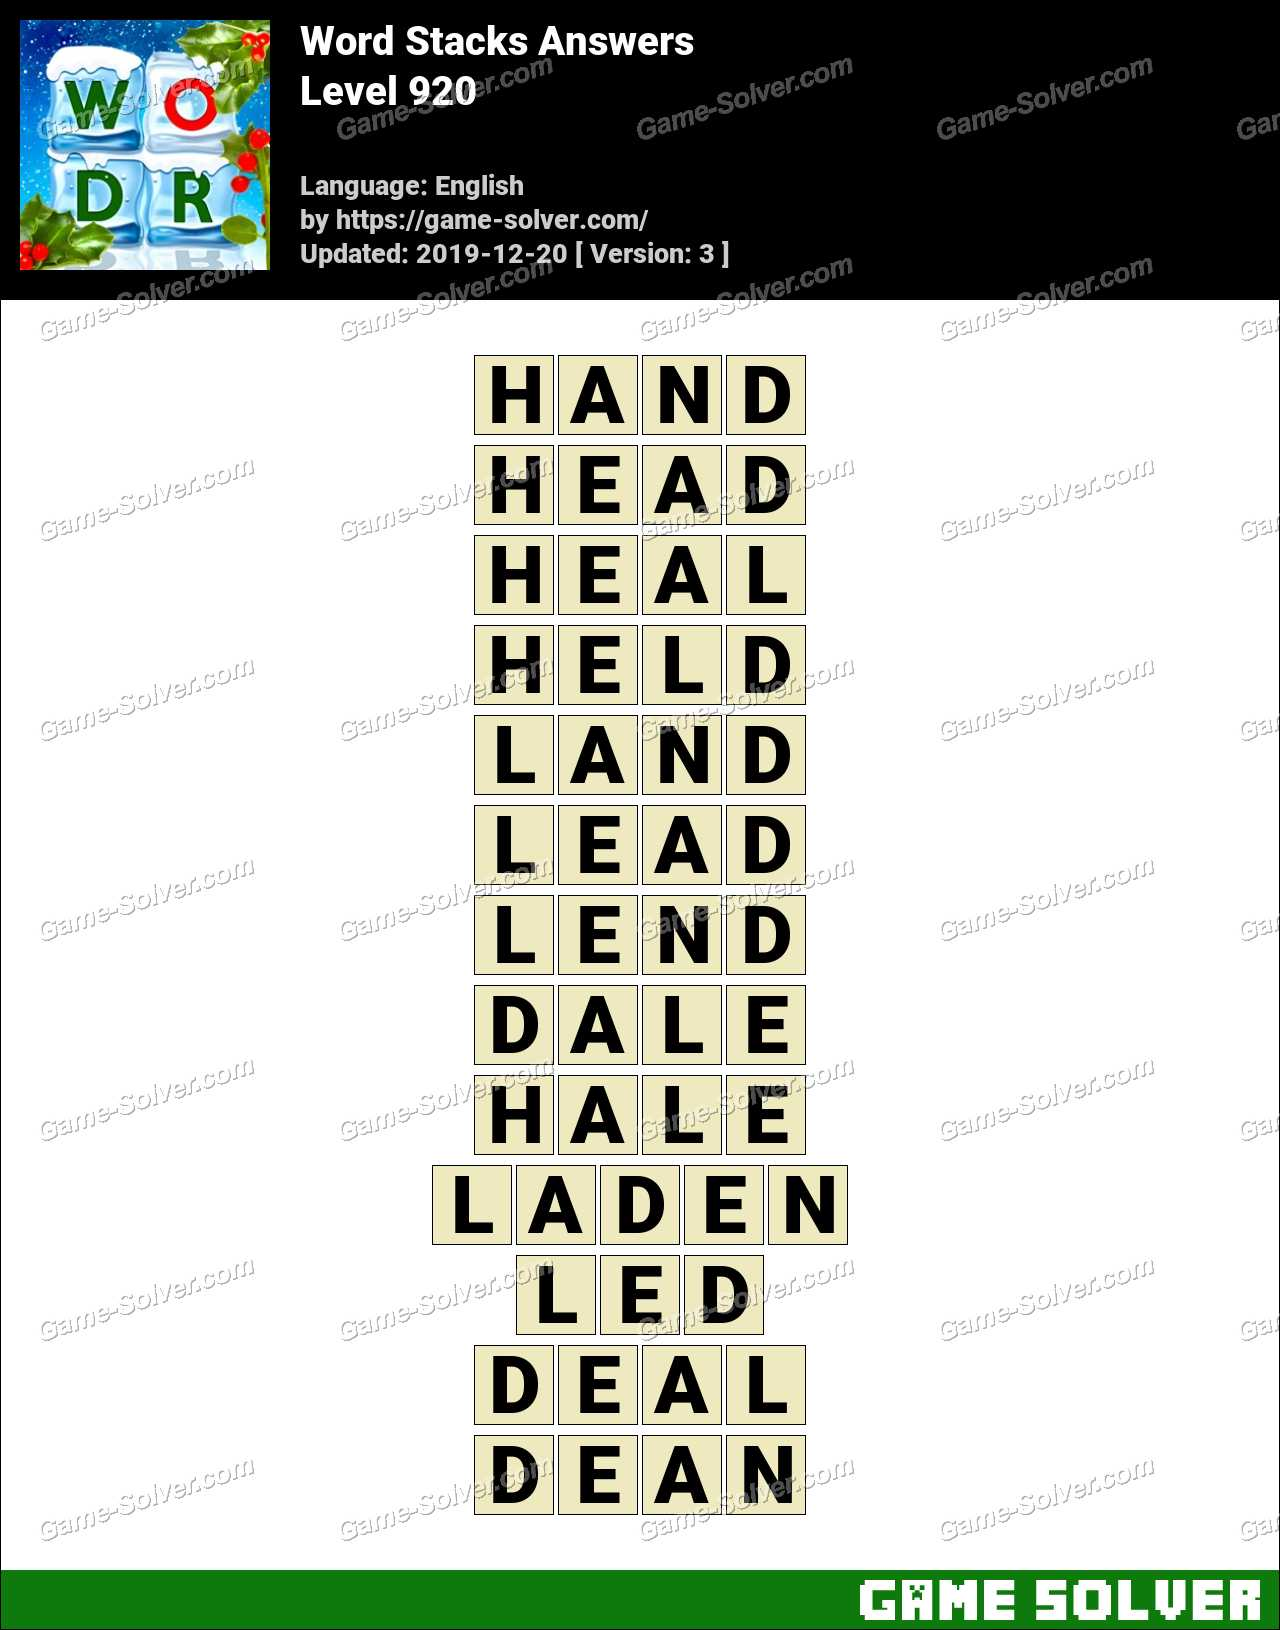 Word Stacks Level 920 Answers